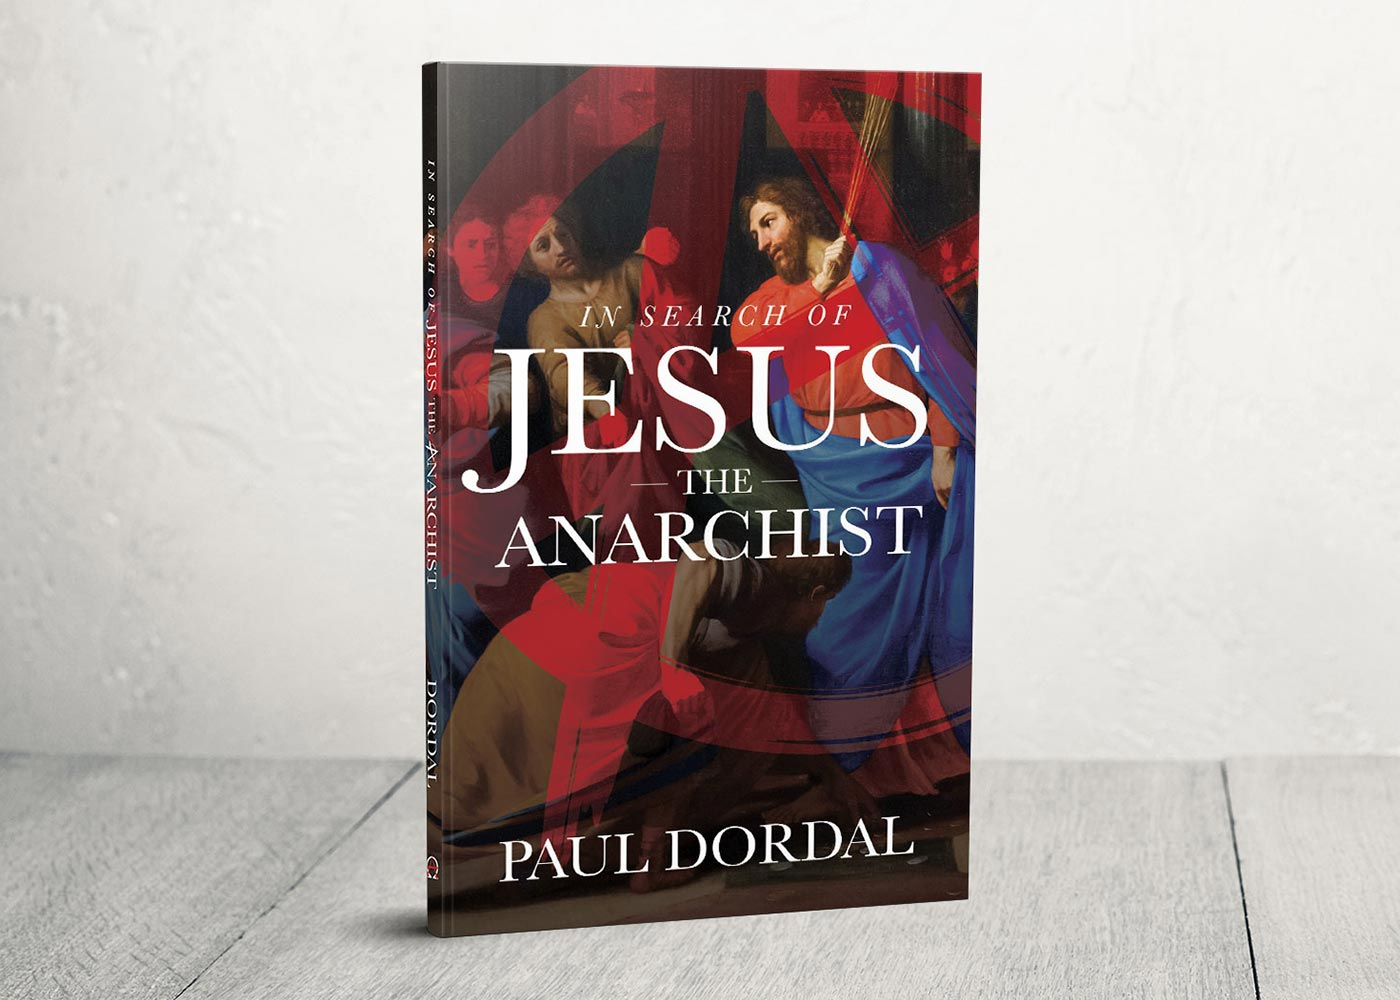 In Search of Jesus the Anarchist by Paul Dordal